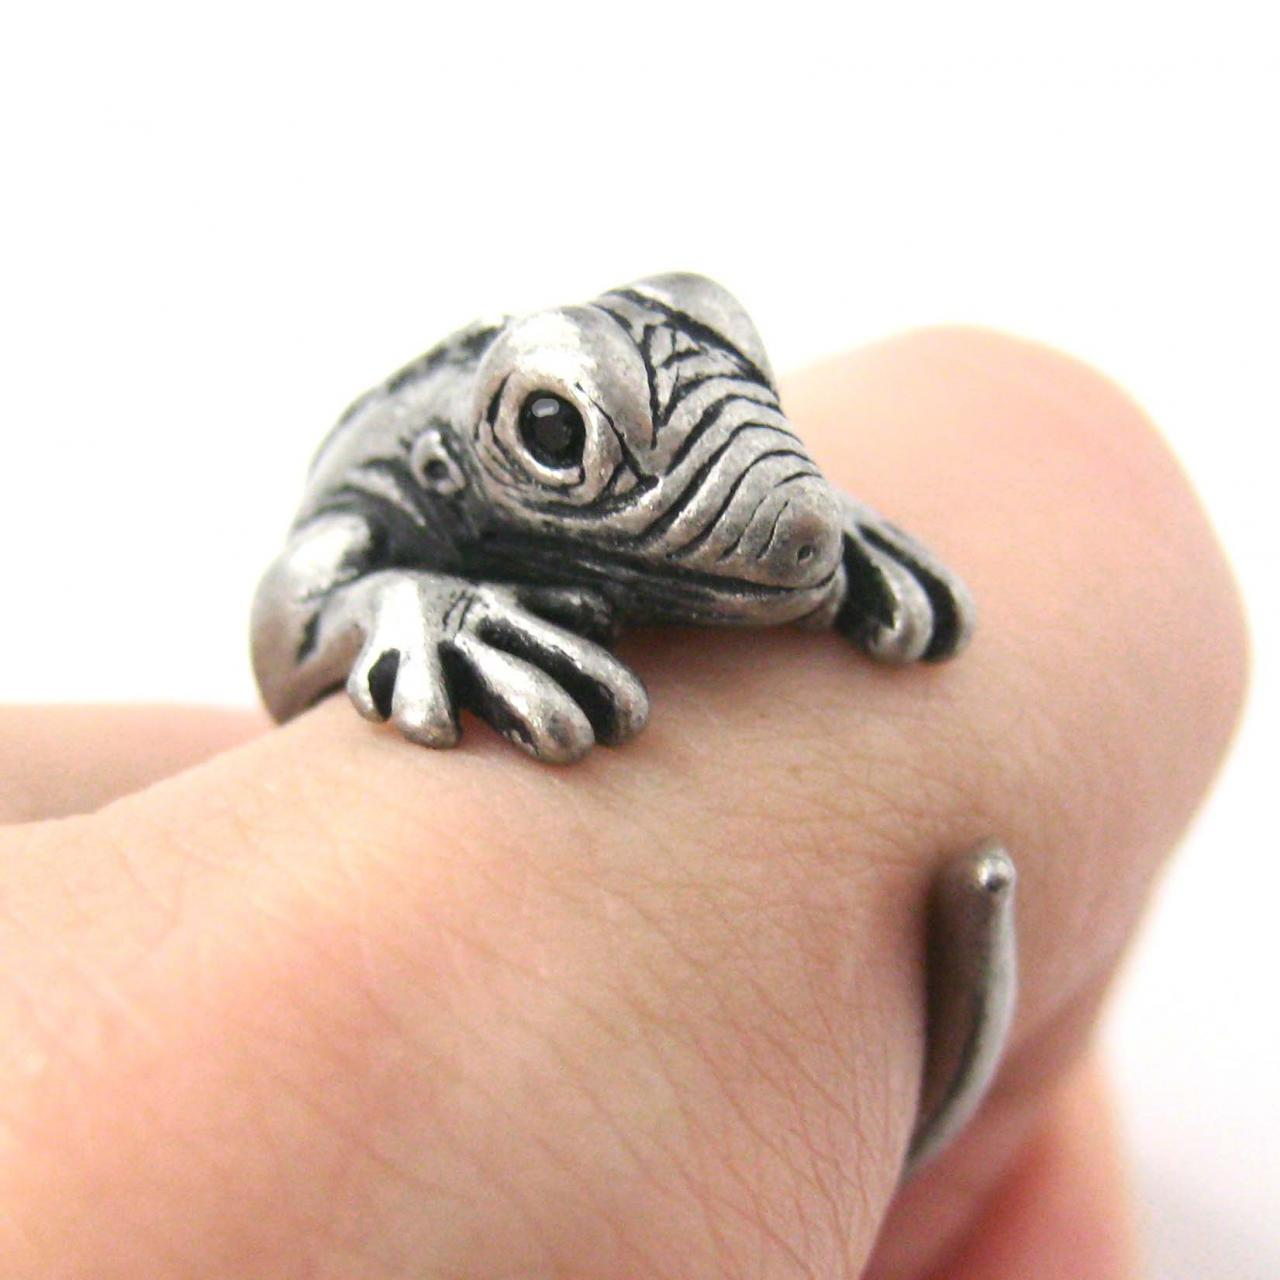 Iguana Chameleon Animal Wrap Ring in Silver Sizes 5 - 9 US Realistic and Cute!